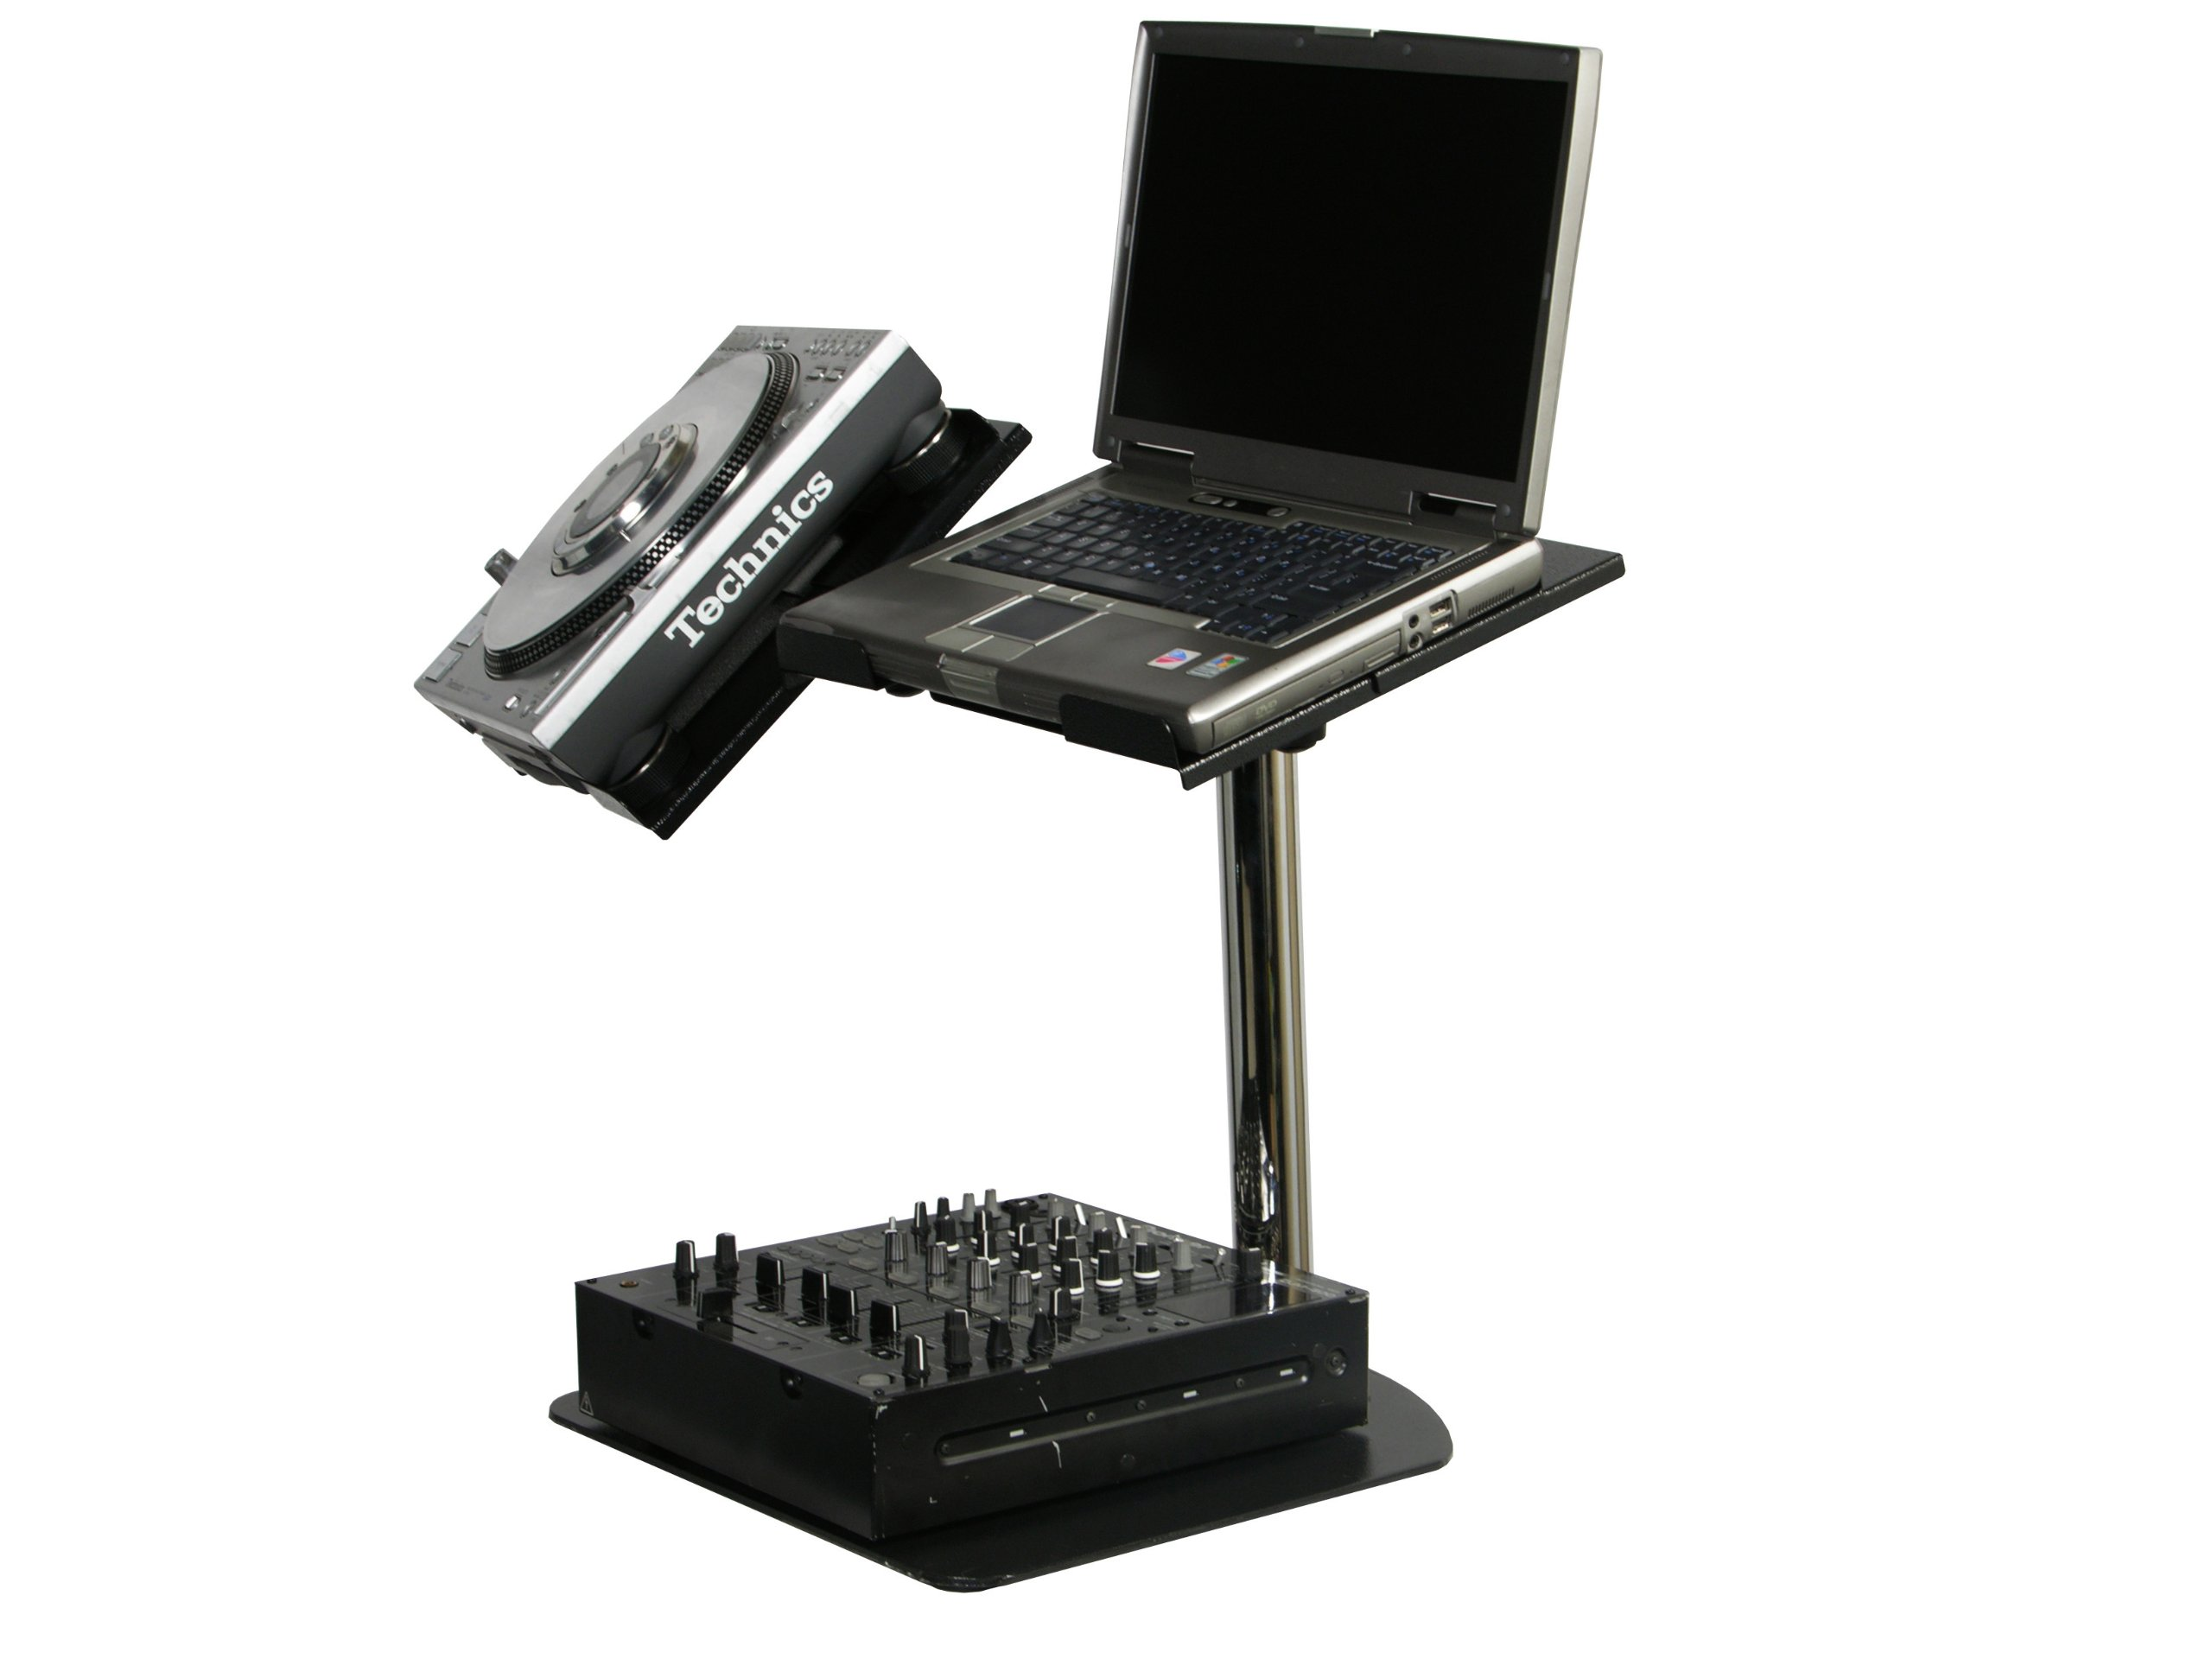 Odyssey LUNISPDB L-Evation Universal Laptop / Gear And Pioneer Cdj-100 Plate Stand With Double Arm Package by ODYSSEY (Image #2)